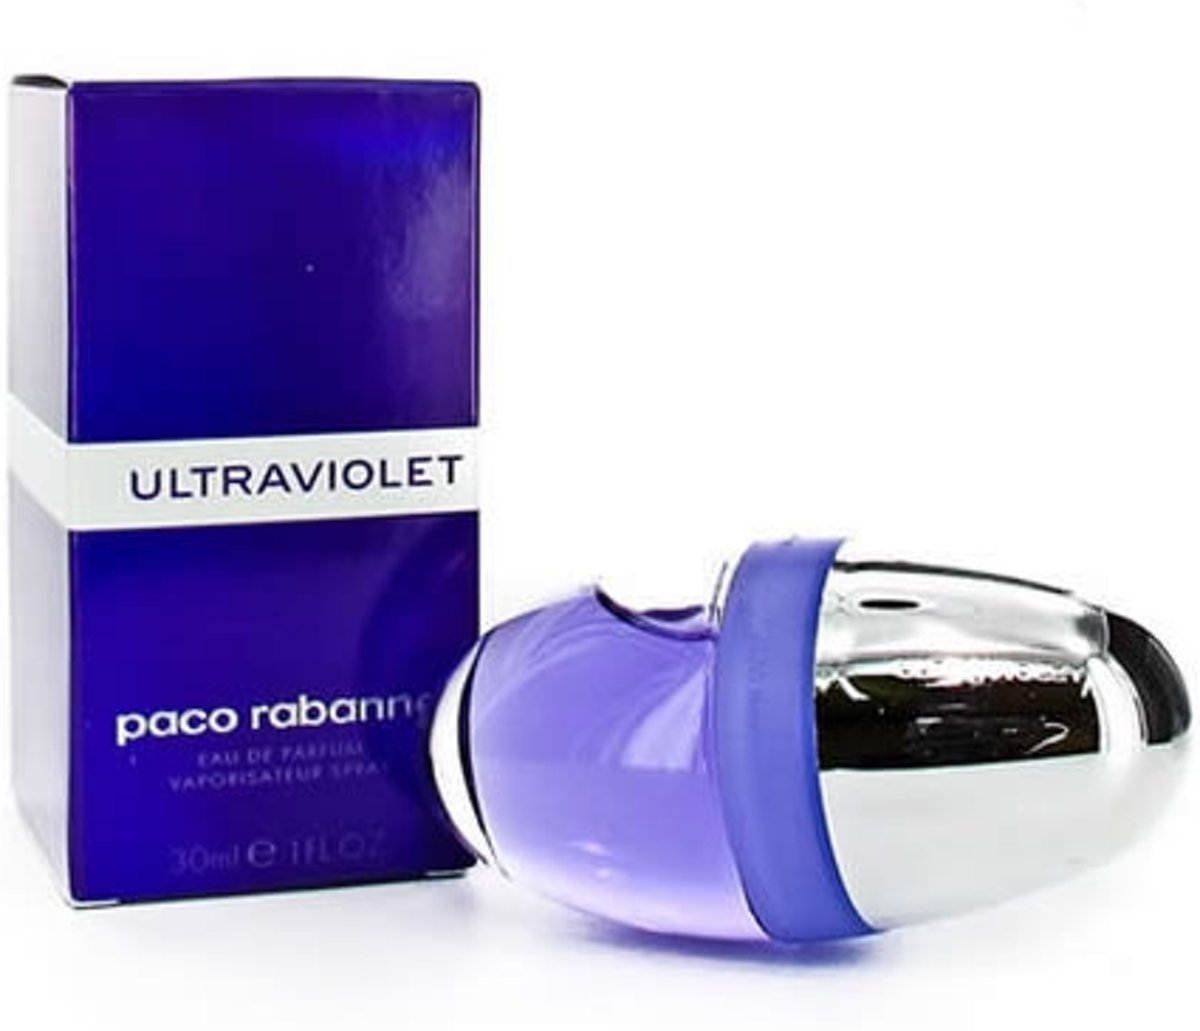 MULTI BUNDEL 3 stuks Paco Rabanne Ultraviolet Eau De Perfume Spray 30ml